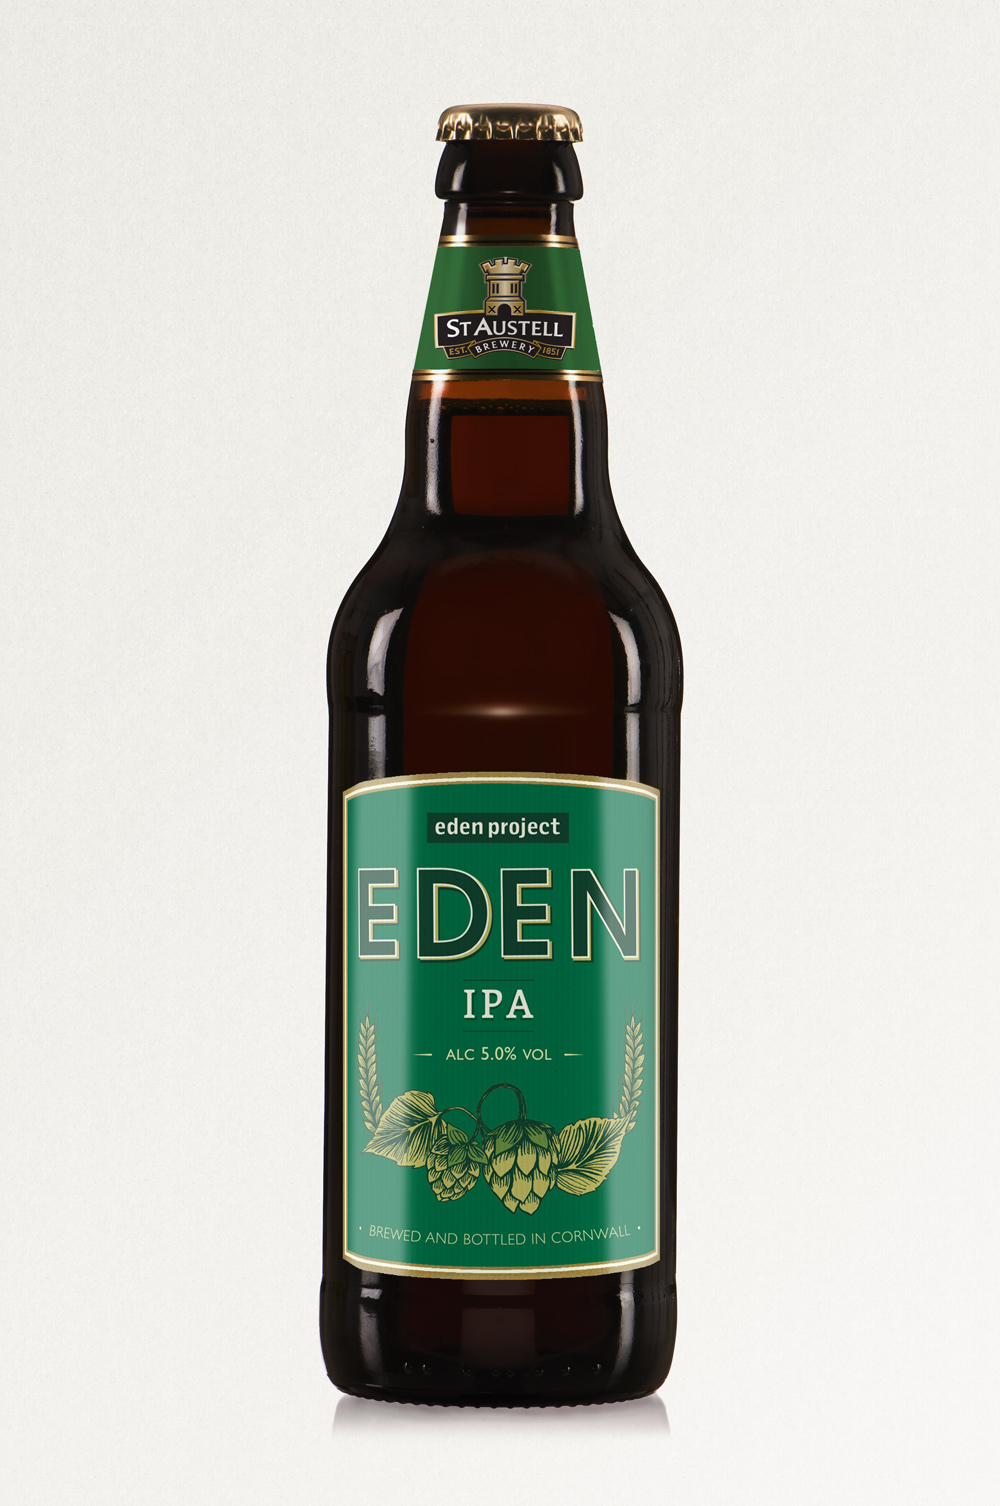 EDEN IPA, St Austell Brewery, IPA ,bottle label design